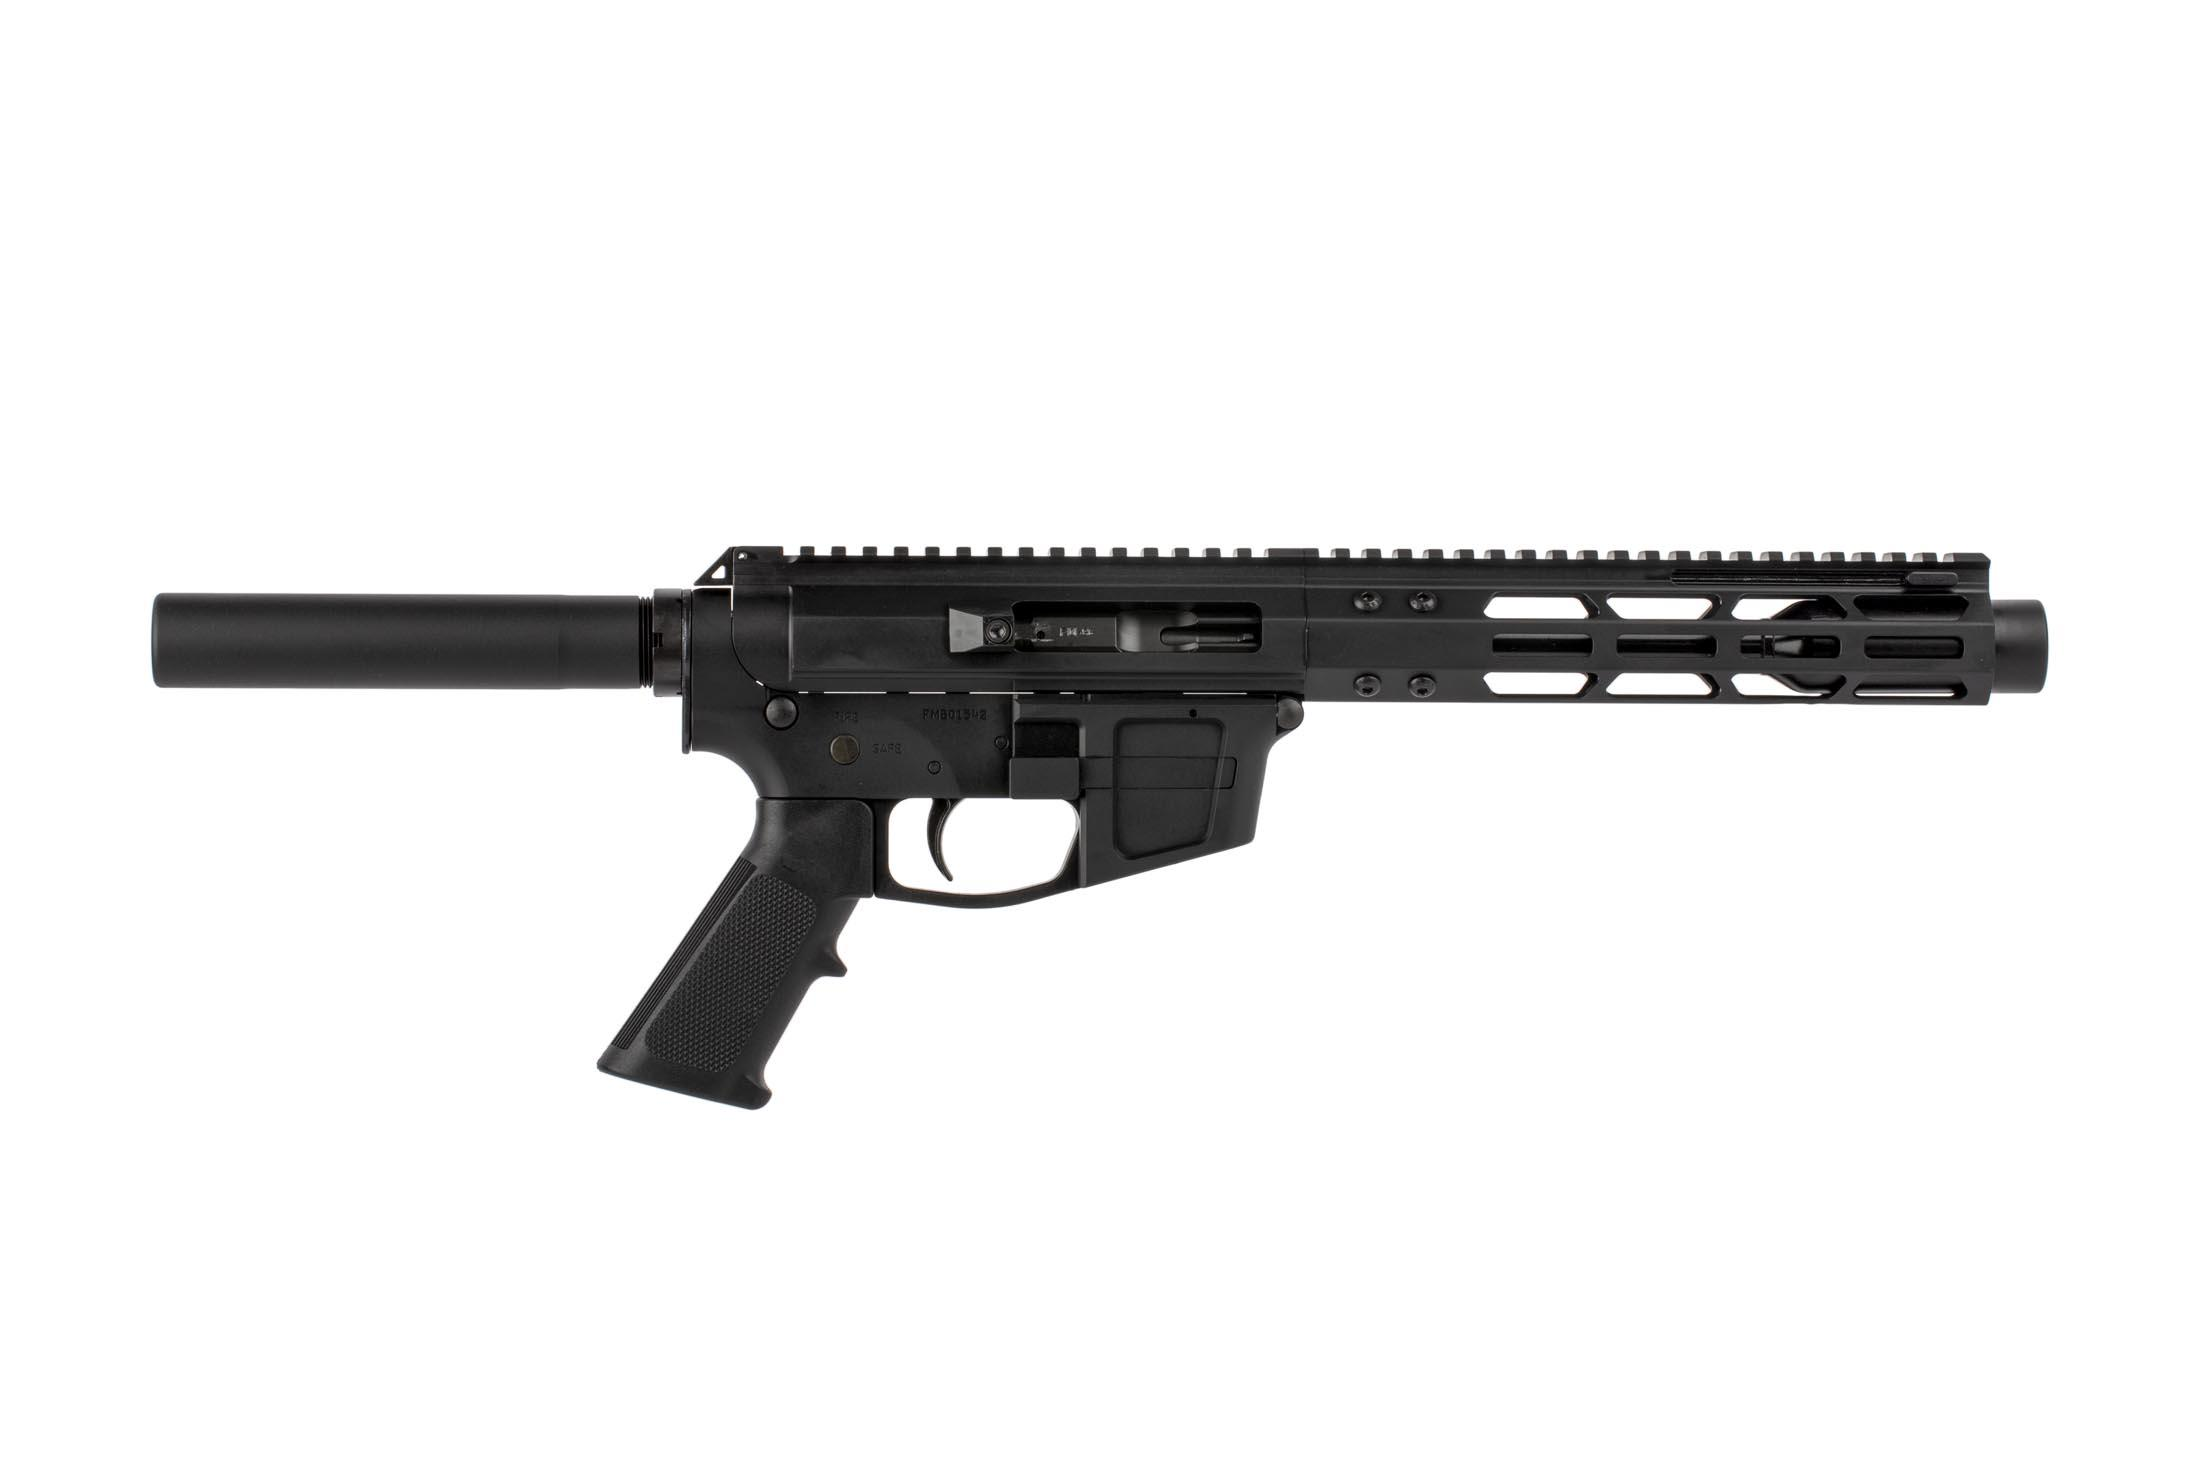 The FM Products FM 9 pistol comes with an M-LOK handguard and blast diffuser